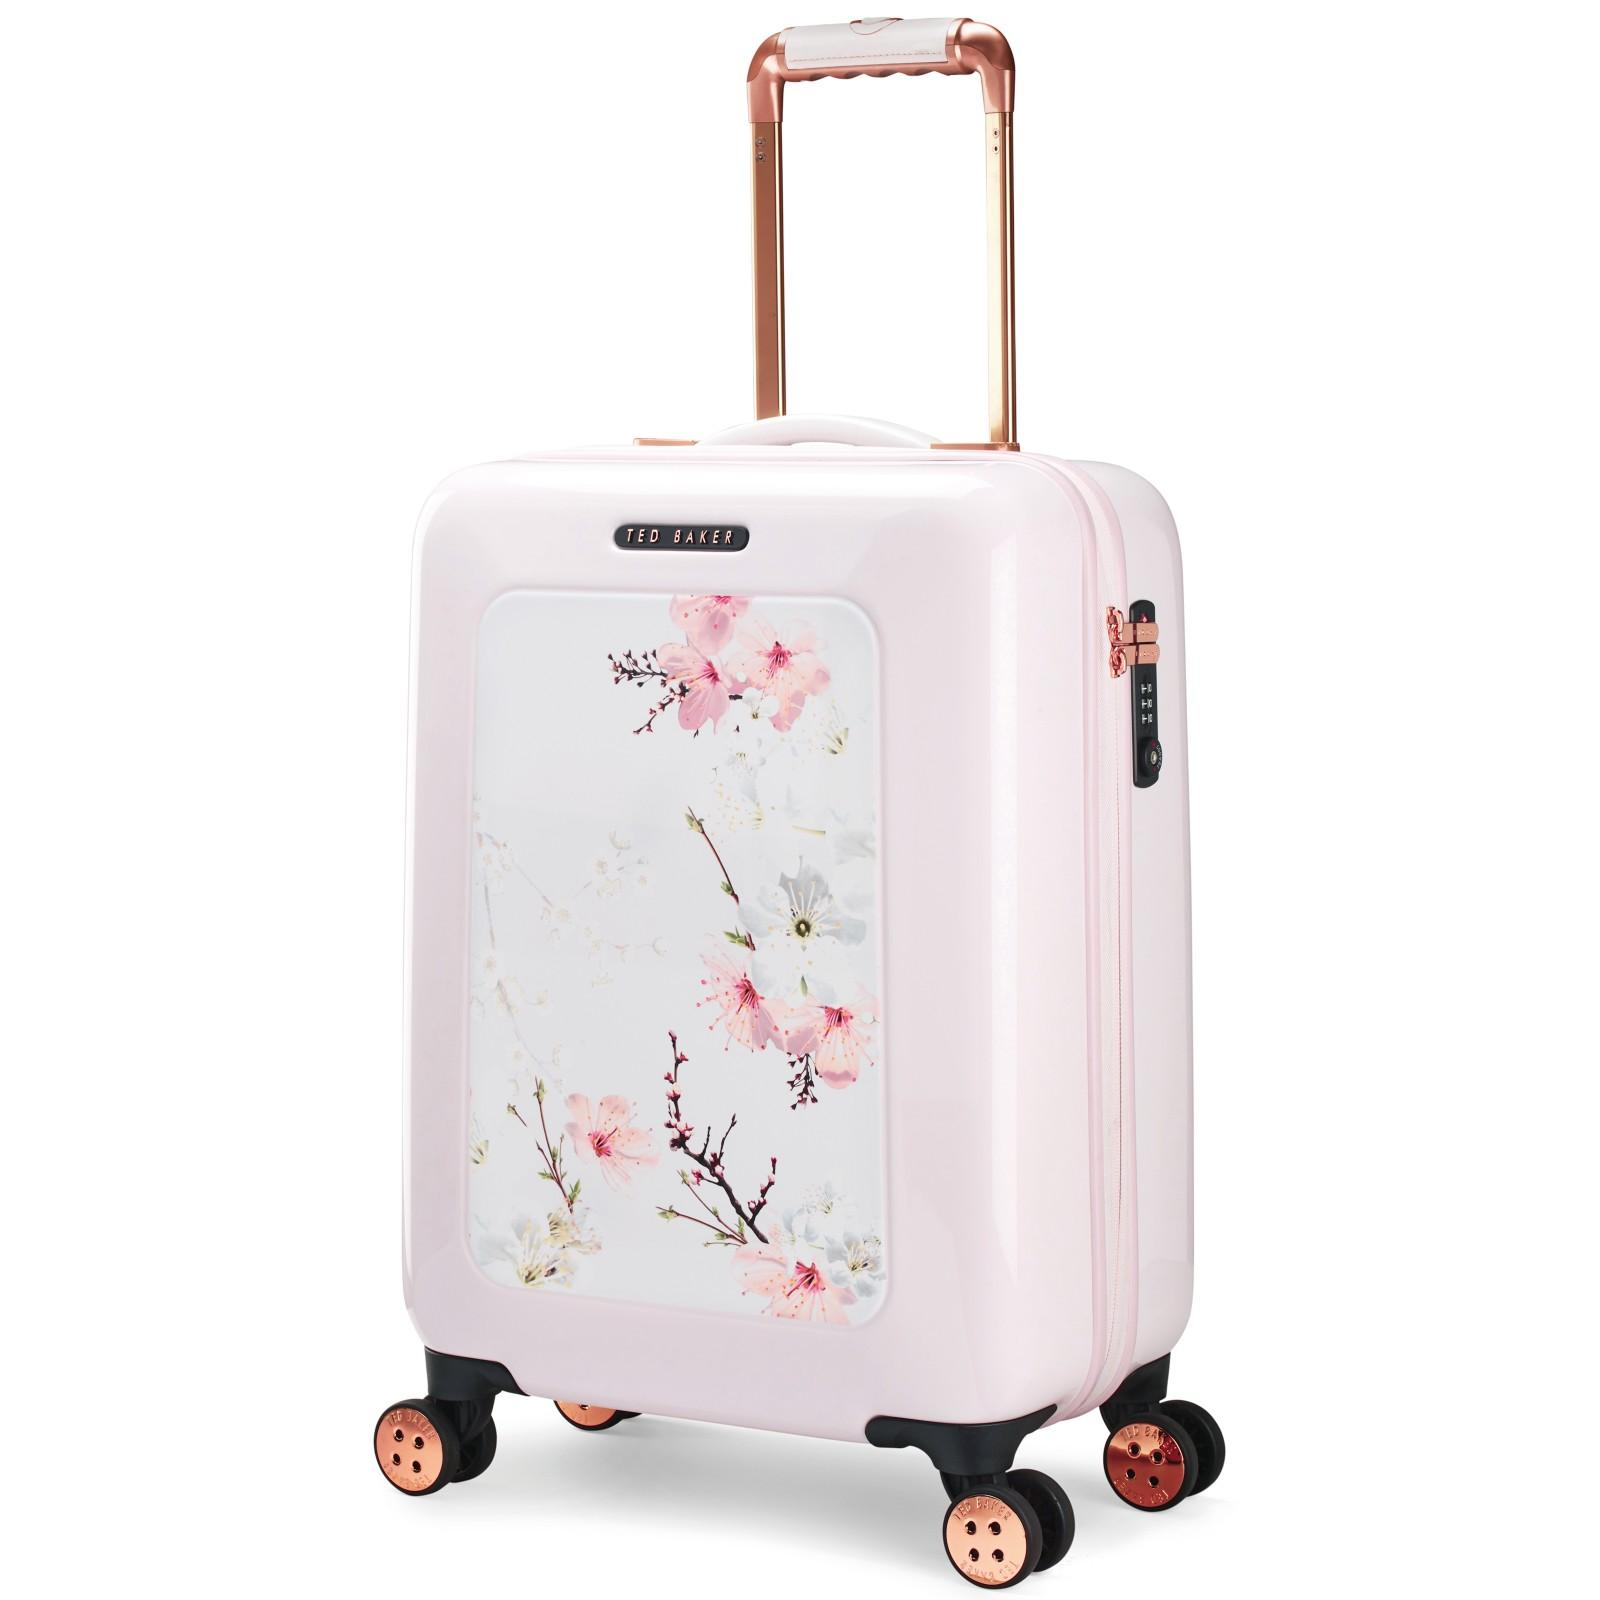 481a5f45651fcb Ted Baker Oriental Blossom 54cm 4-wheel Cabin Case in Pink - Lyst